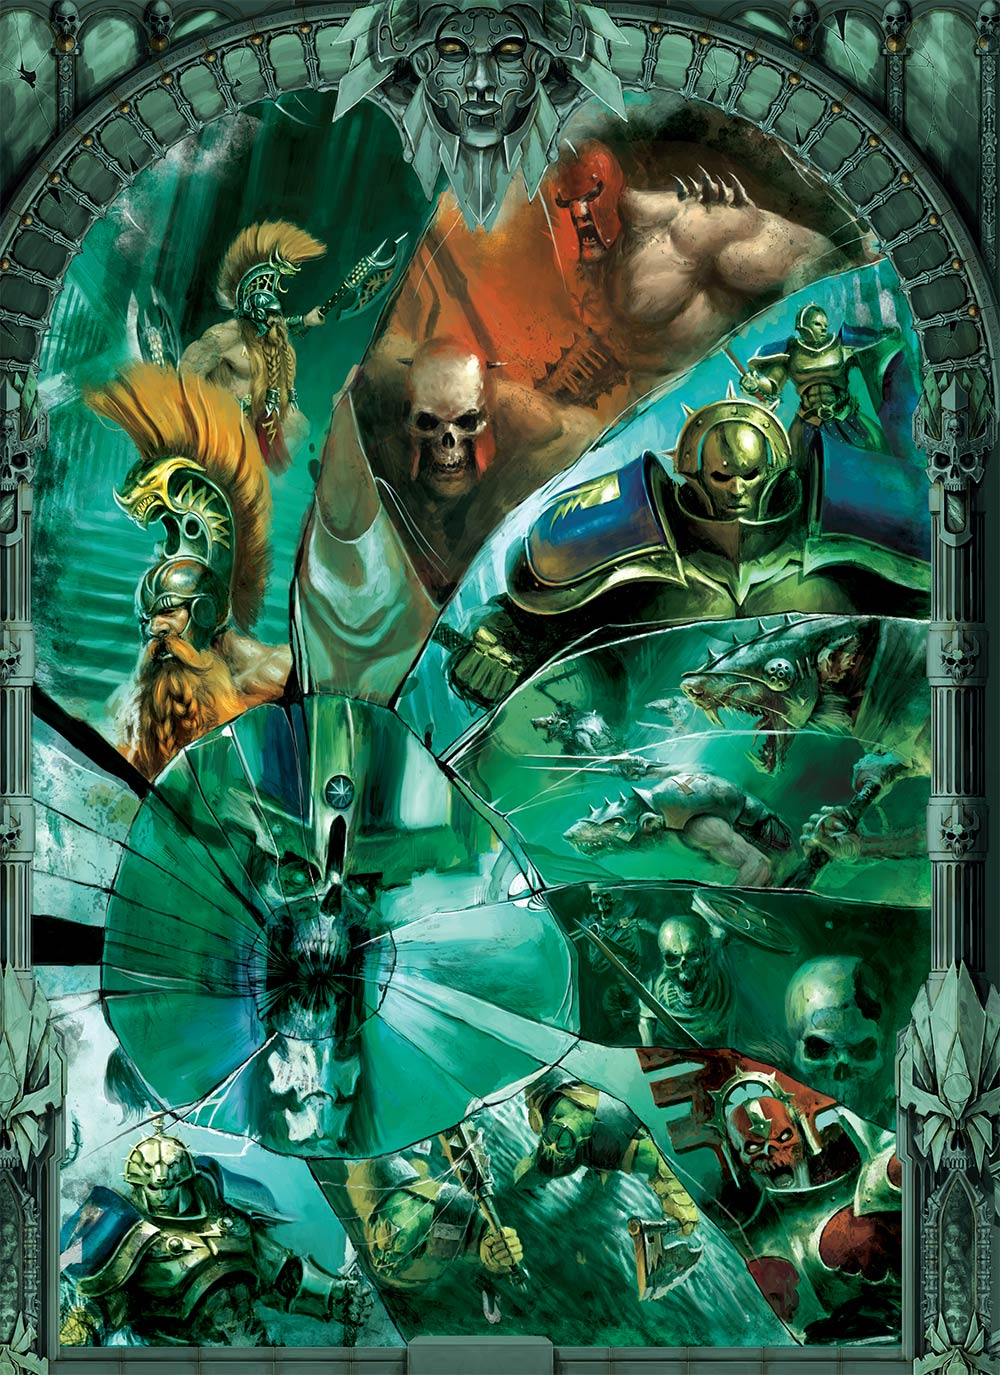 Shadespire-Factions-Image1jrcn.jpg